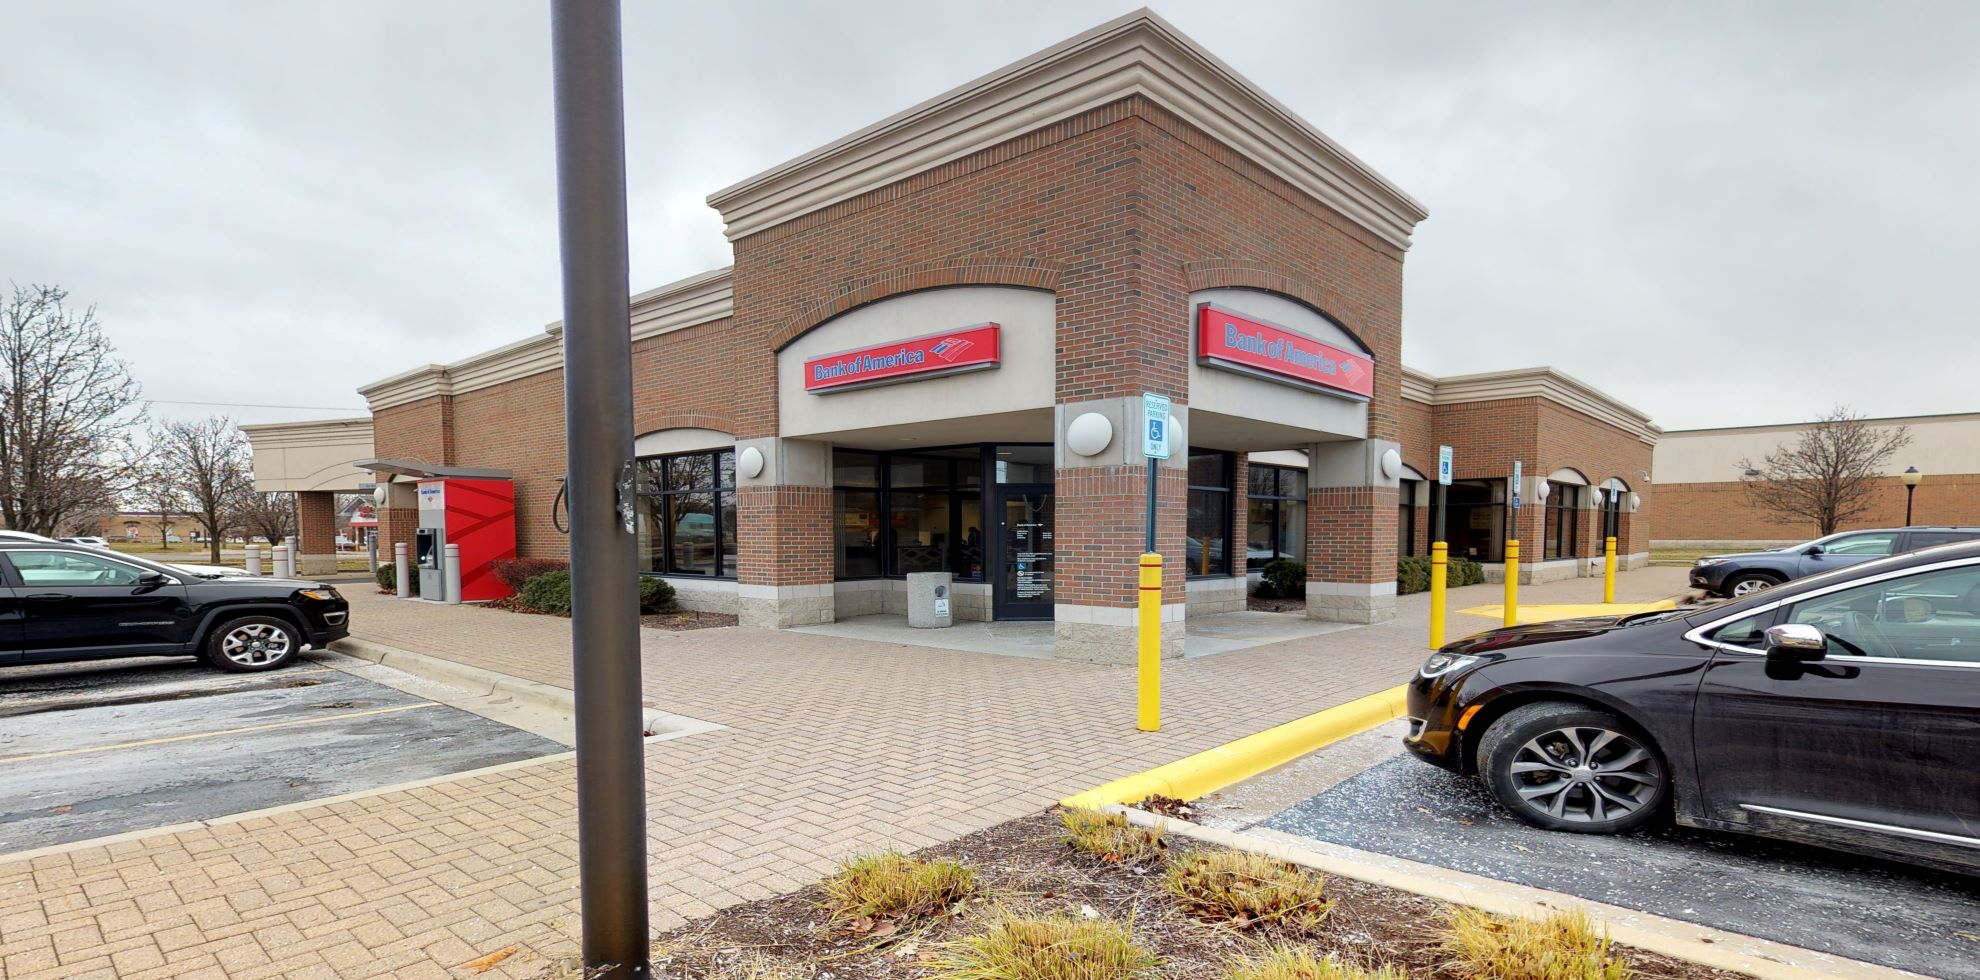 Bank of America financial center with drive-thru ATM   13750 23 Mile Rd, Shelby Township, MI 48315